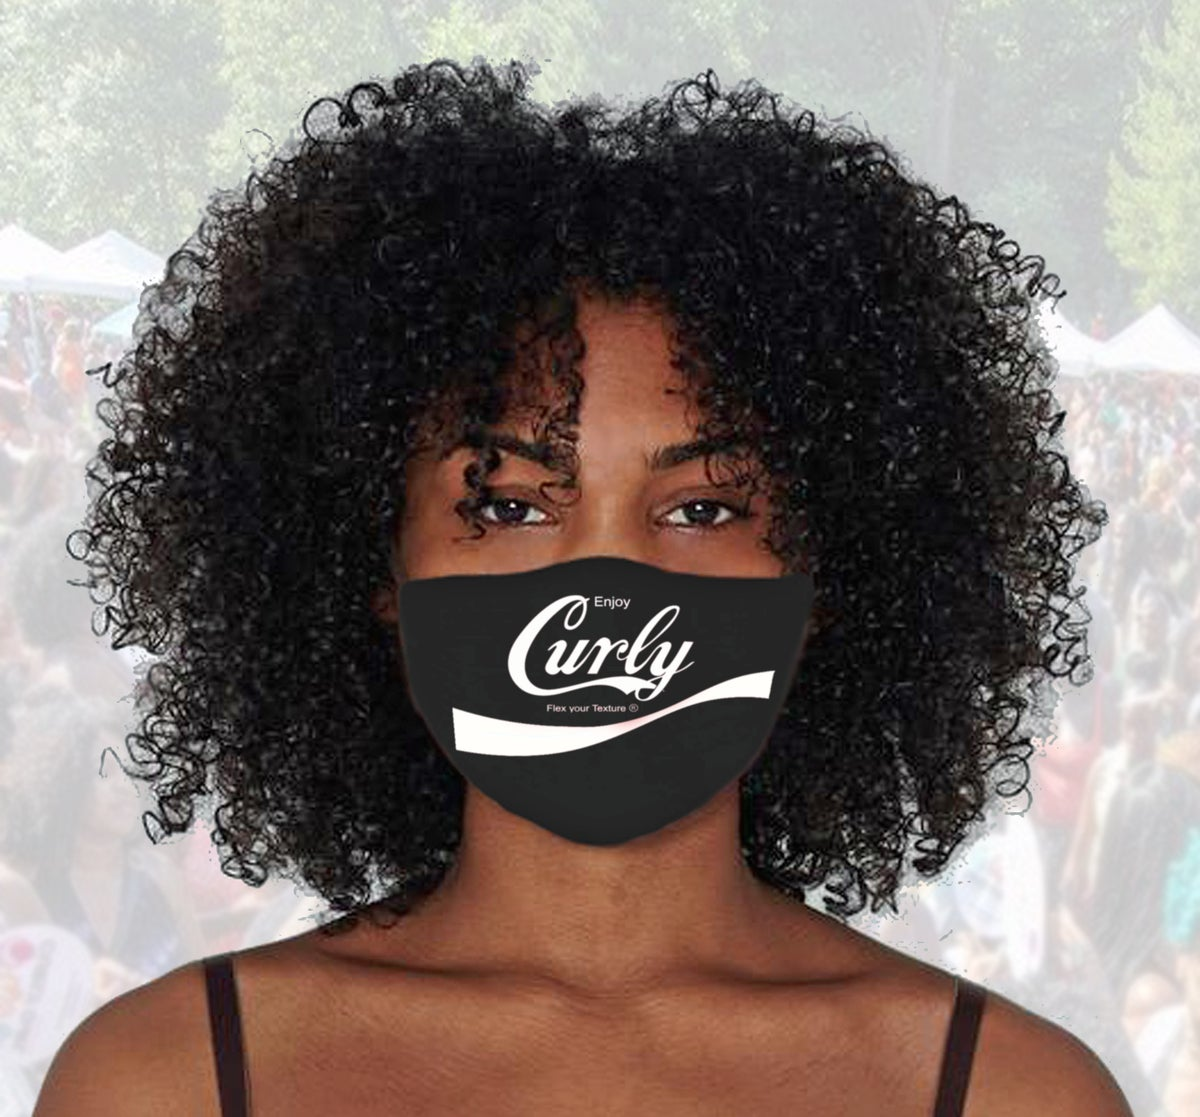 Image of Curly (coke spoof) Face Mask cover